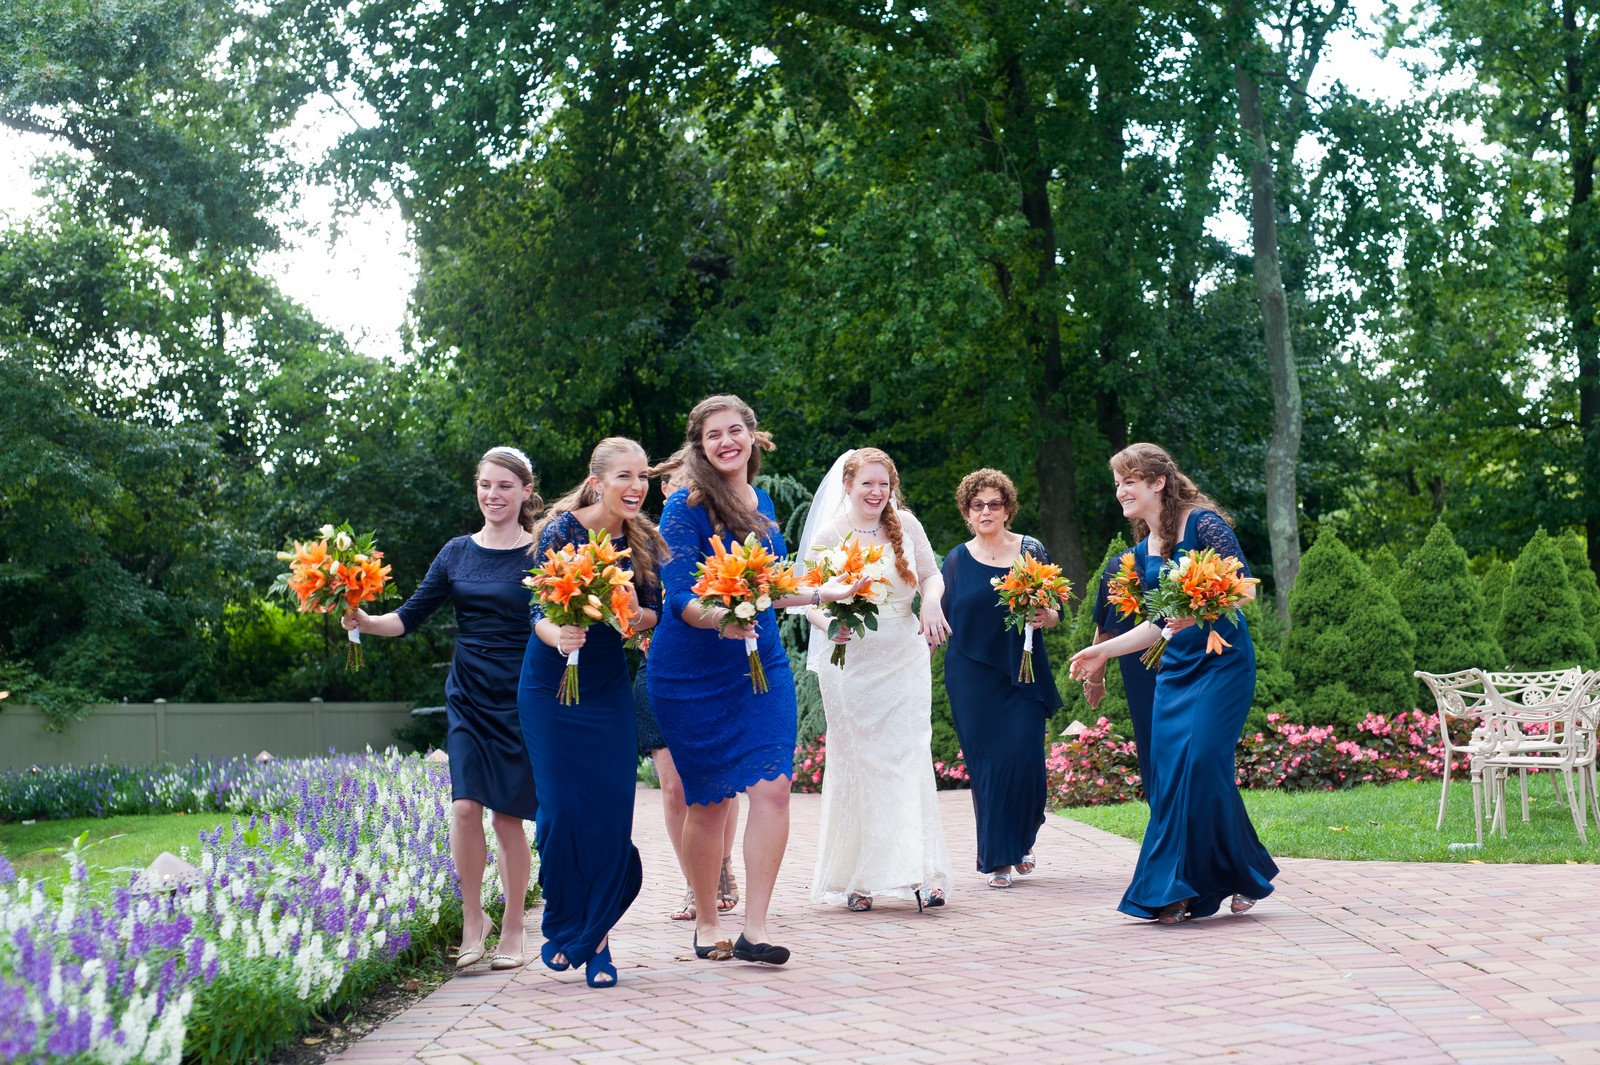 Sam and Yishai's Modern Orthodox Jewish Wedding at Crest Hollow Country Club, Woodbury NY, Photos by Chaim Schvarcz, Bridal Party, Bridesmaids